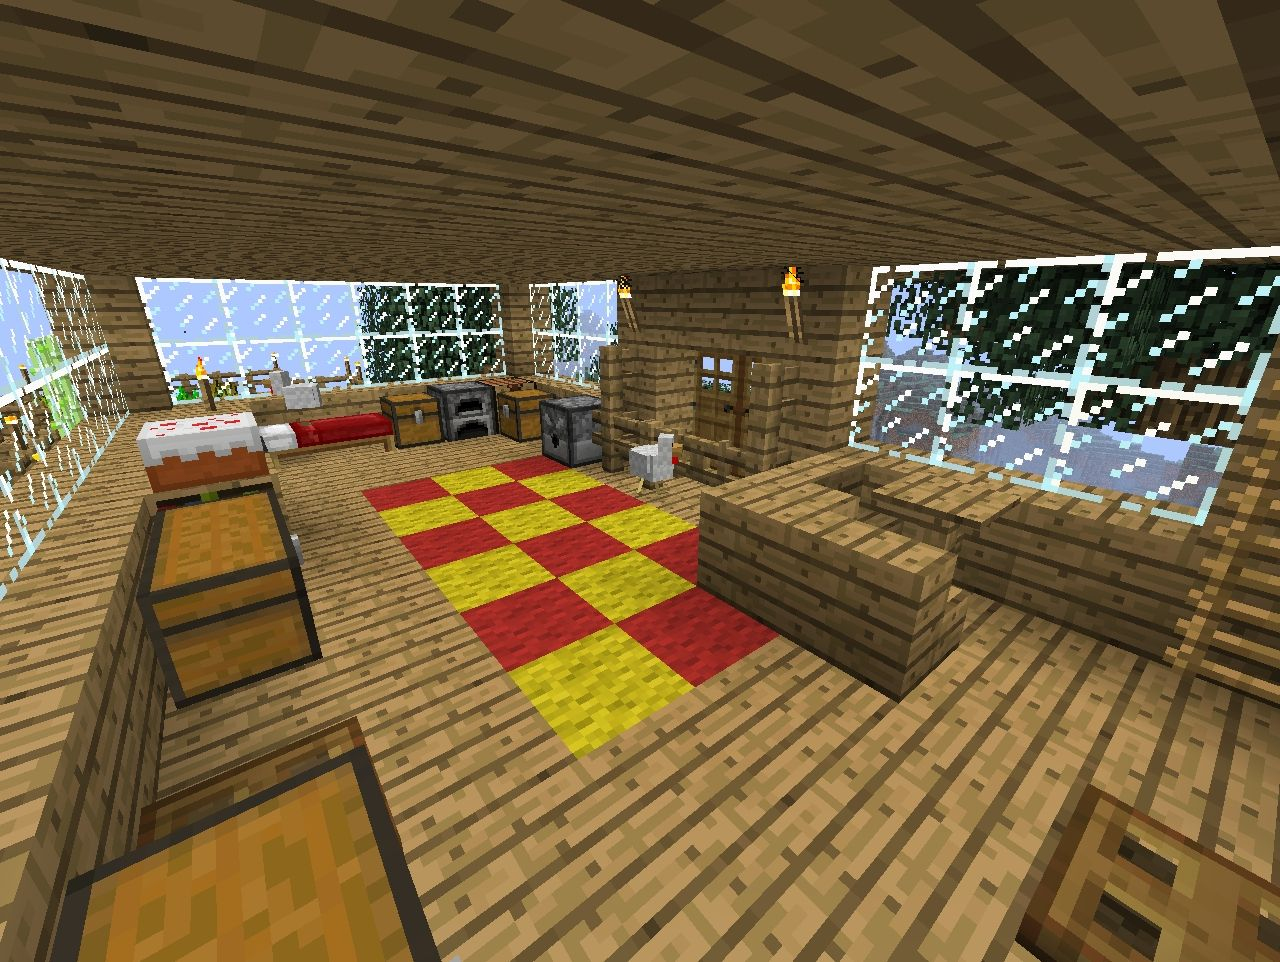 The first floor and my roommates (chickens :D)